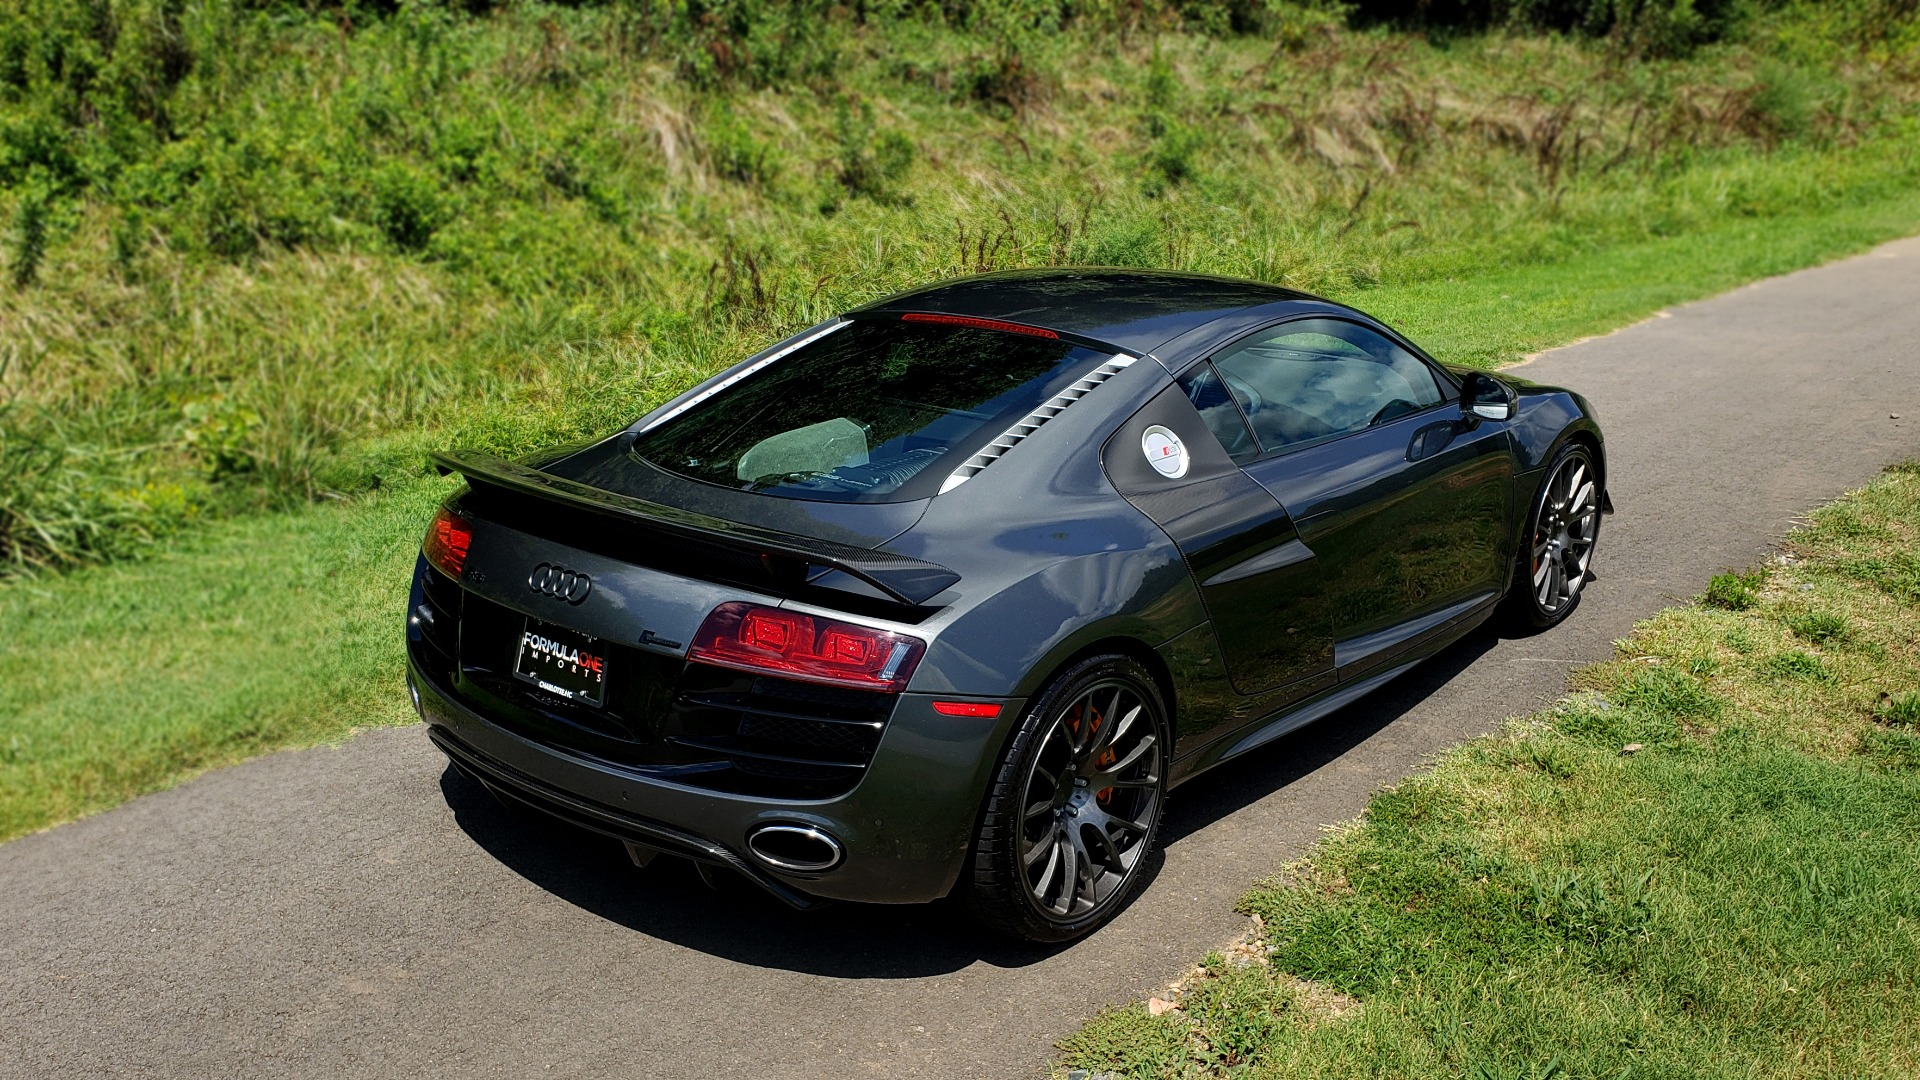 Used 2010 Audi R8 5.2L V10 SUPERCHARGED / AWD / COUPE / CUSTOM TUNED for sale $82,795 at Formula Imports in Charlotte NC 28227 11